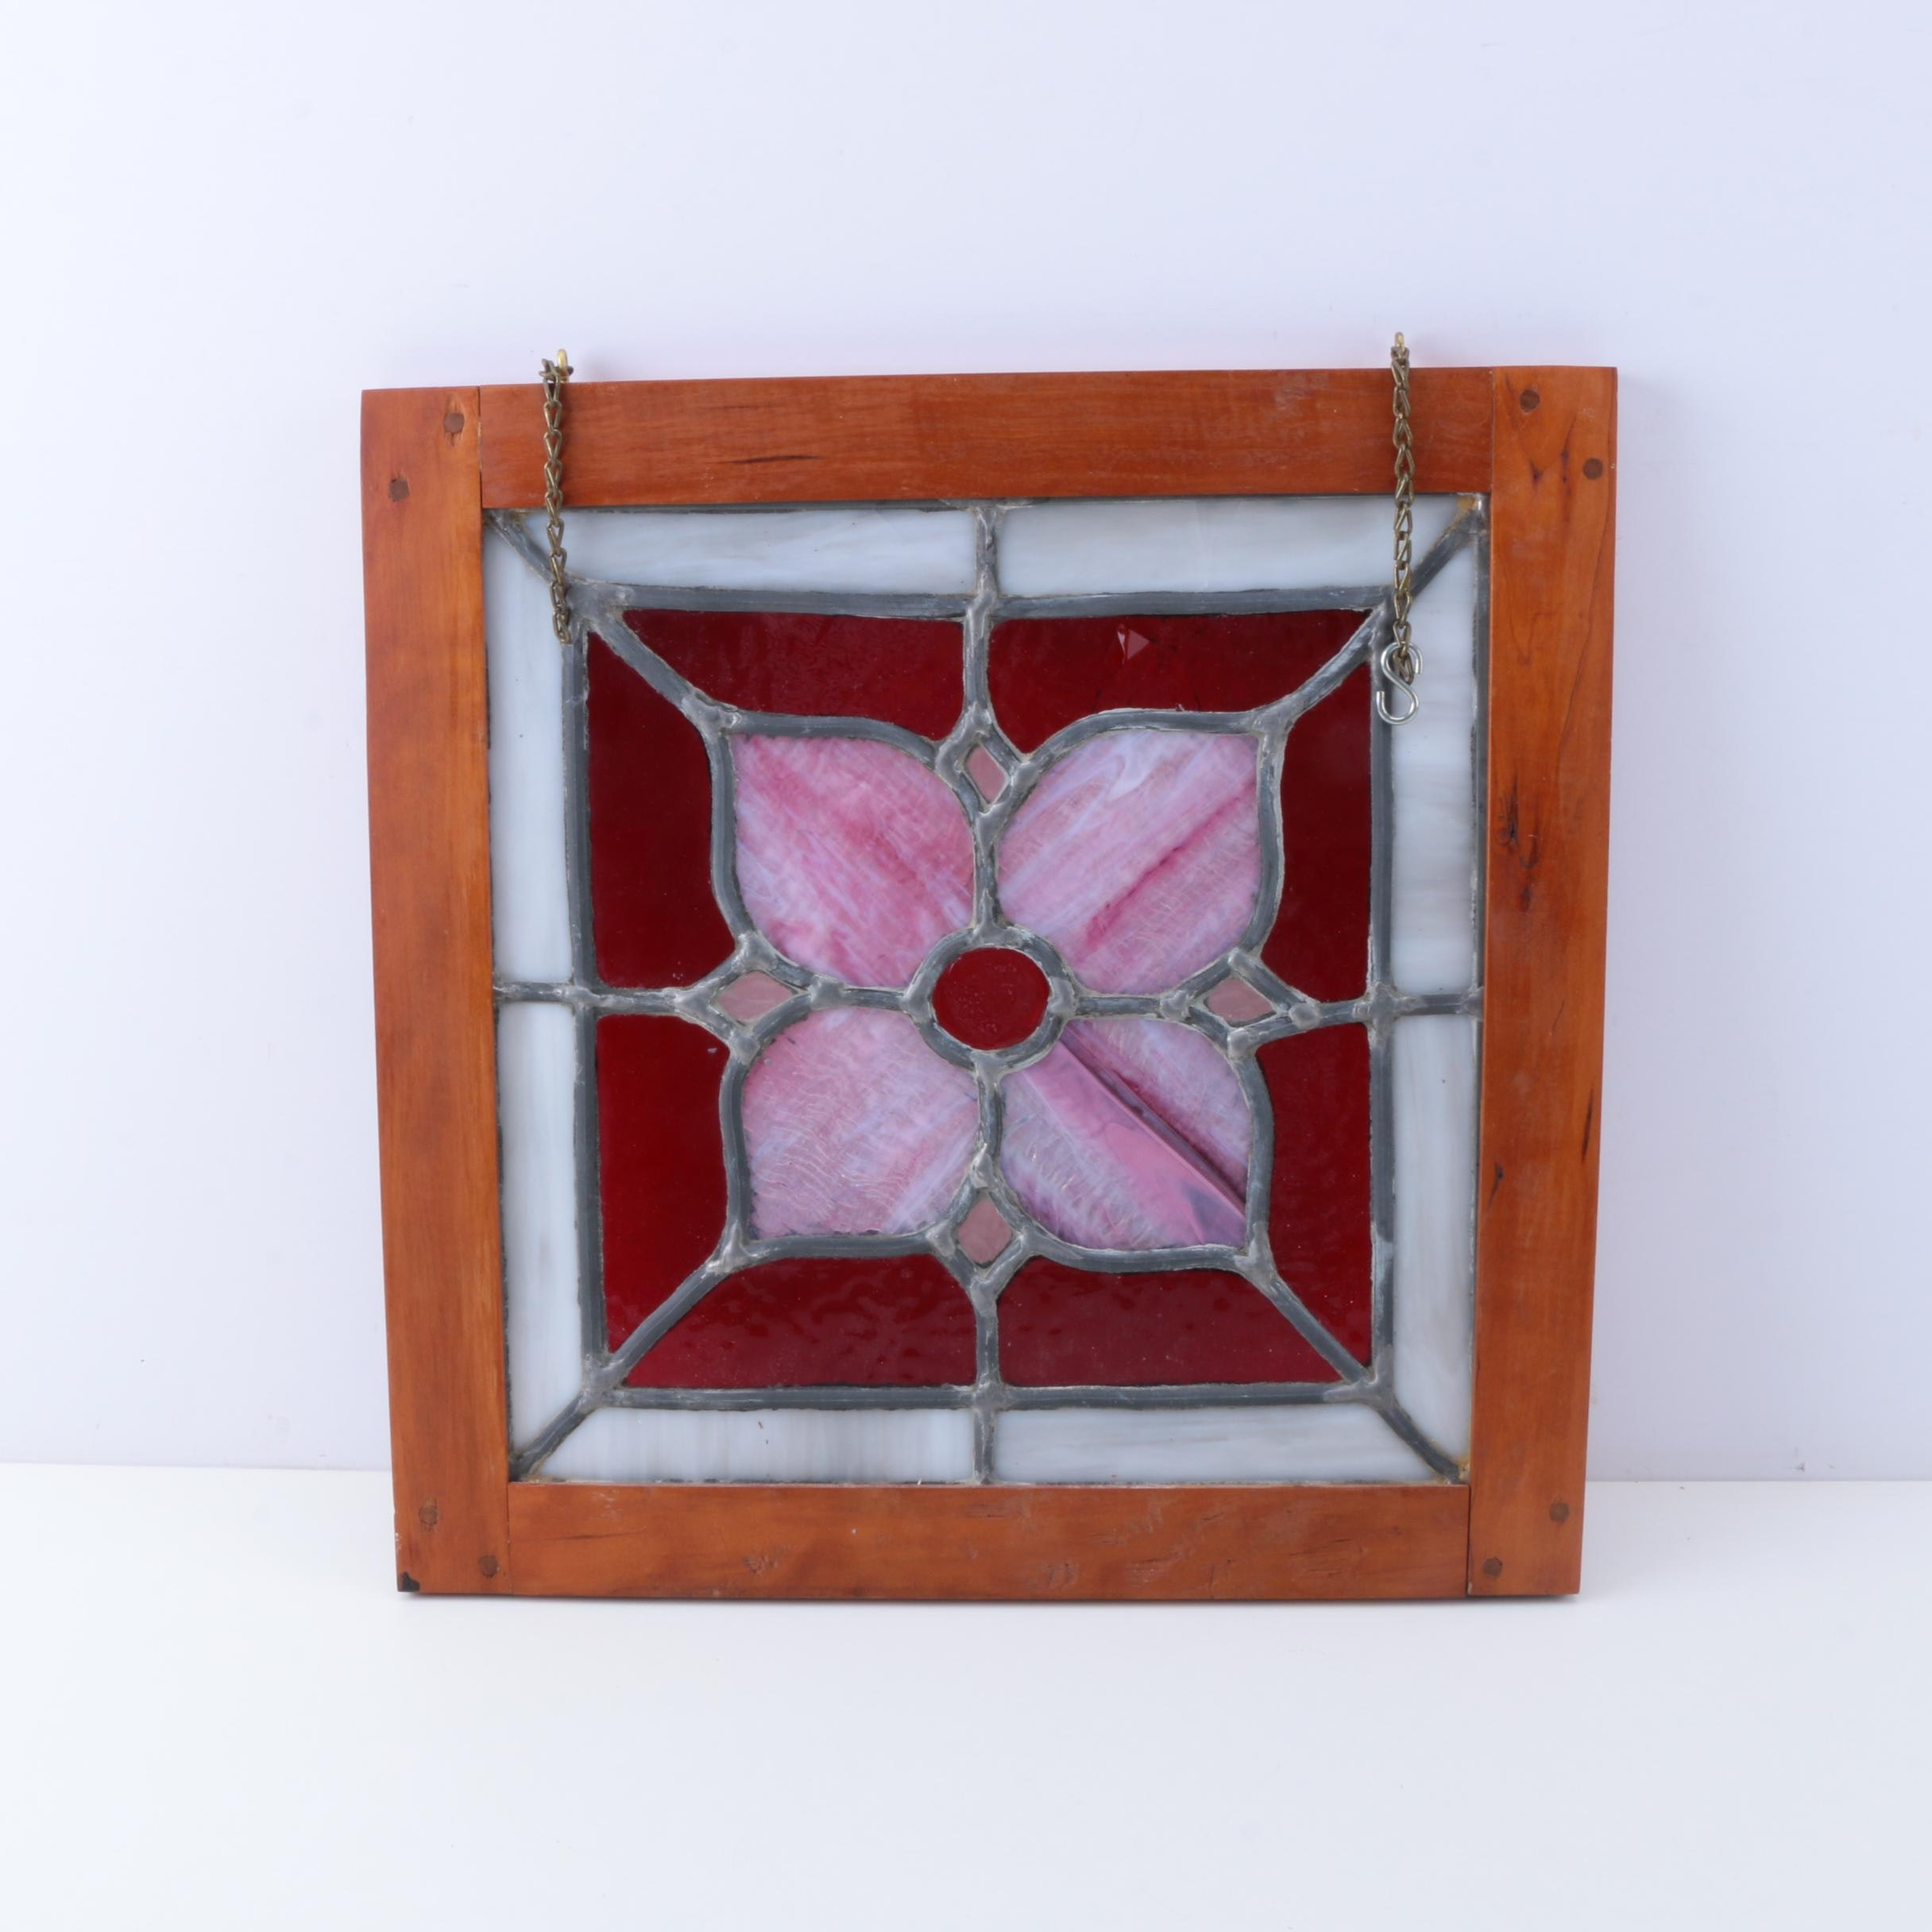 Framed Stained Glass Flower Decor